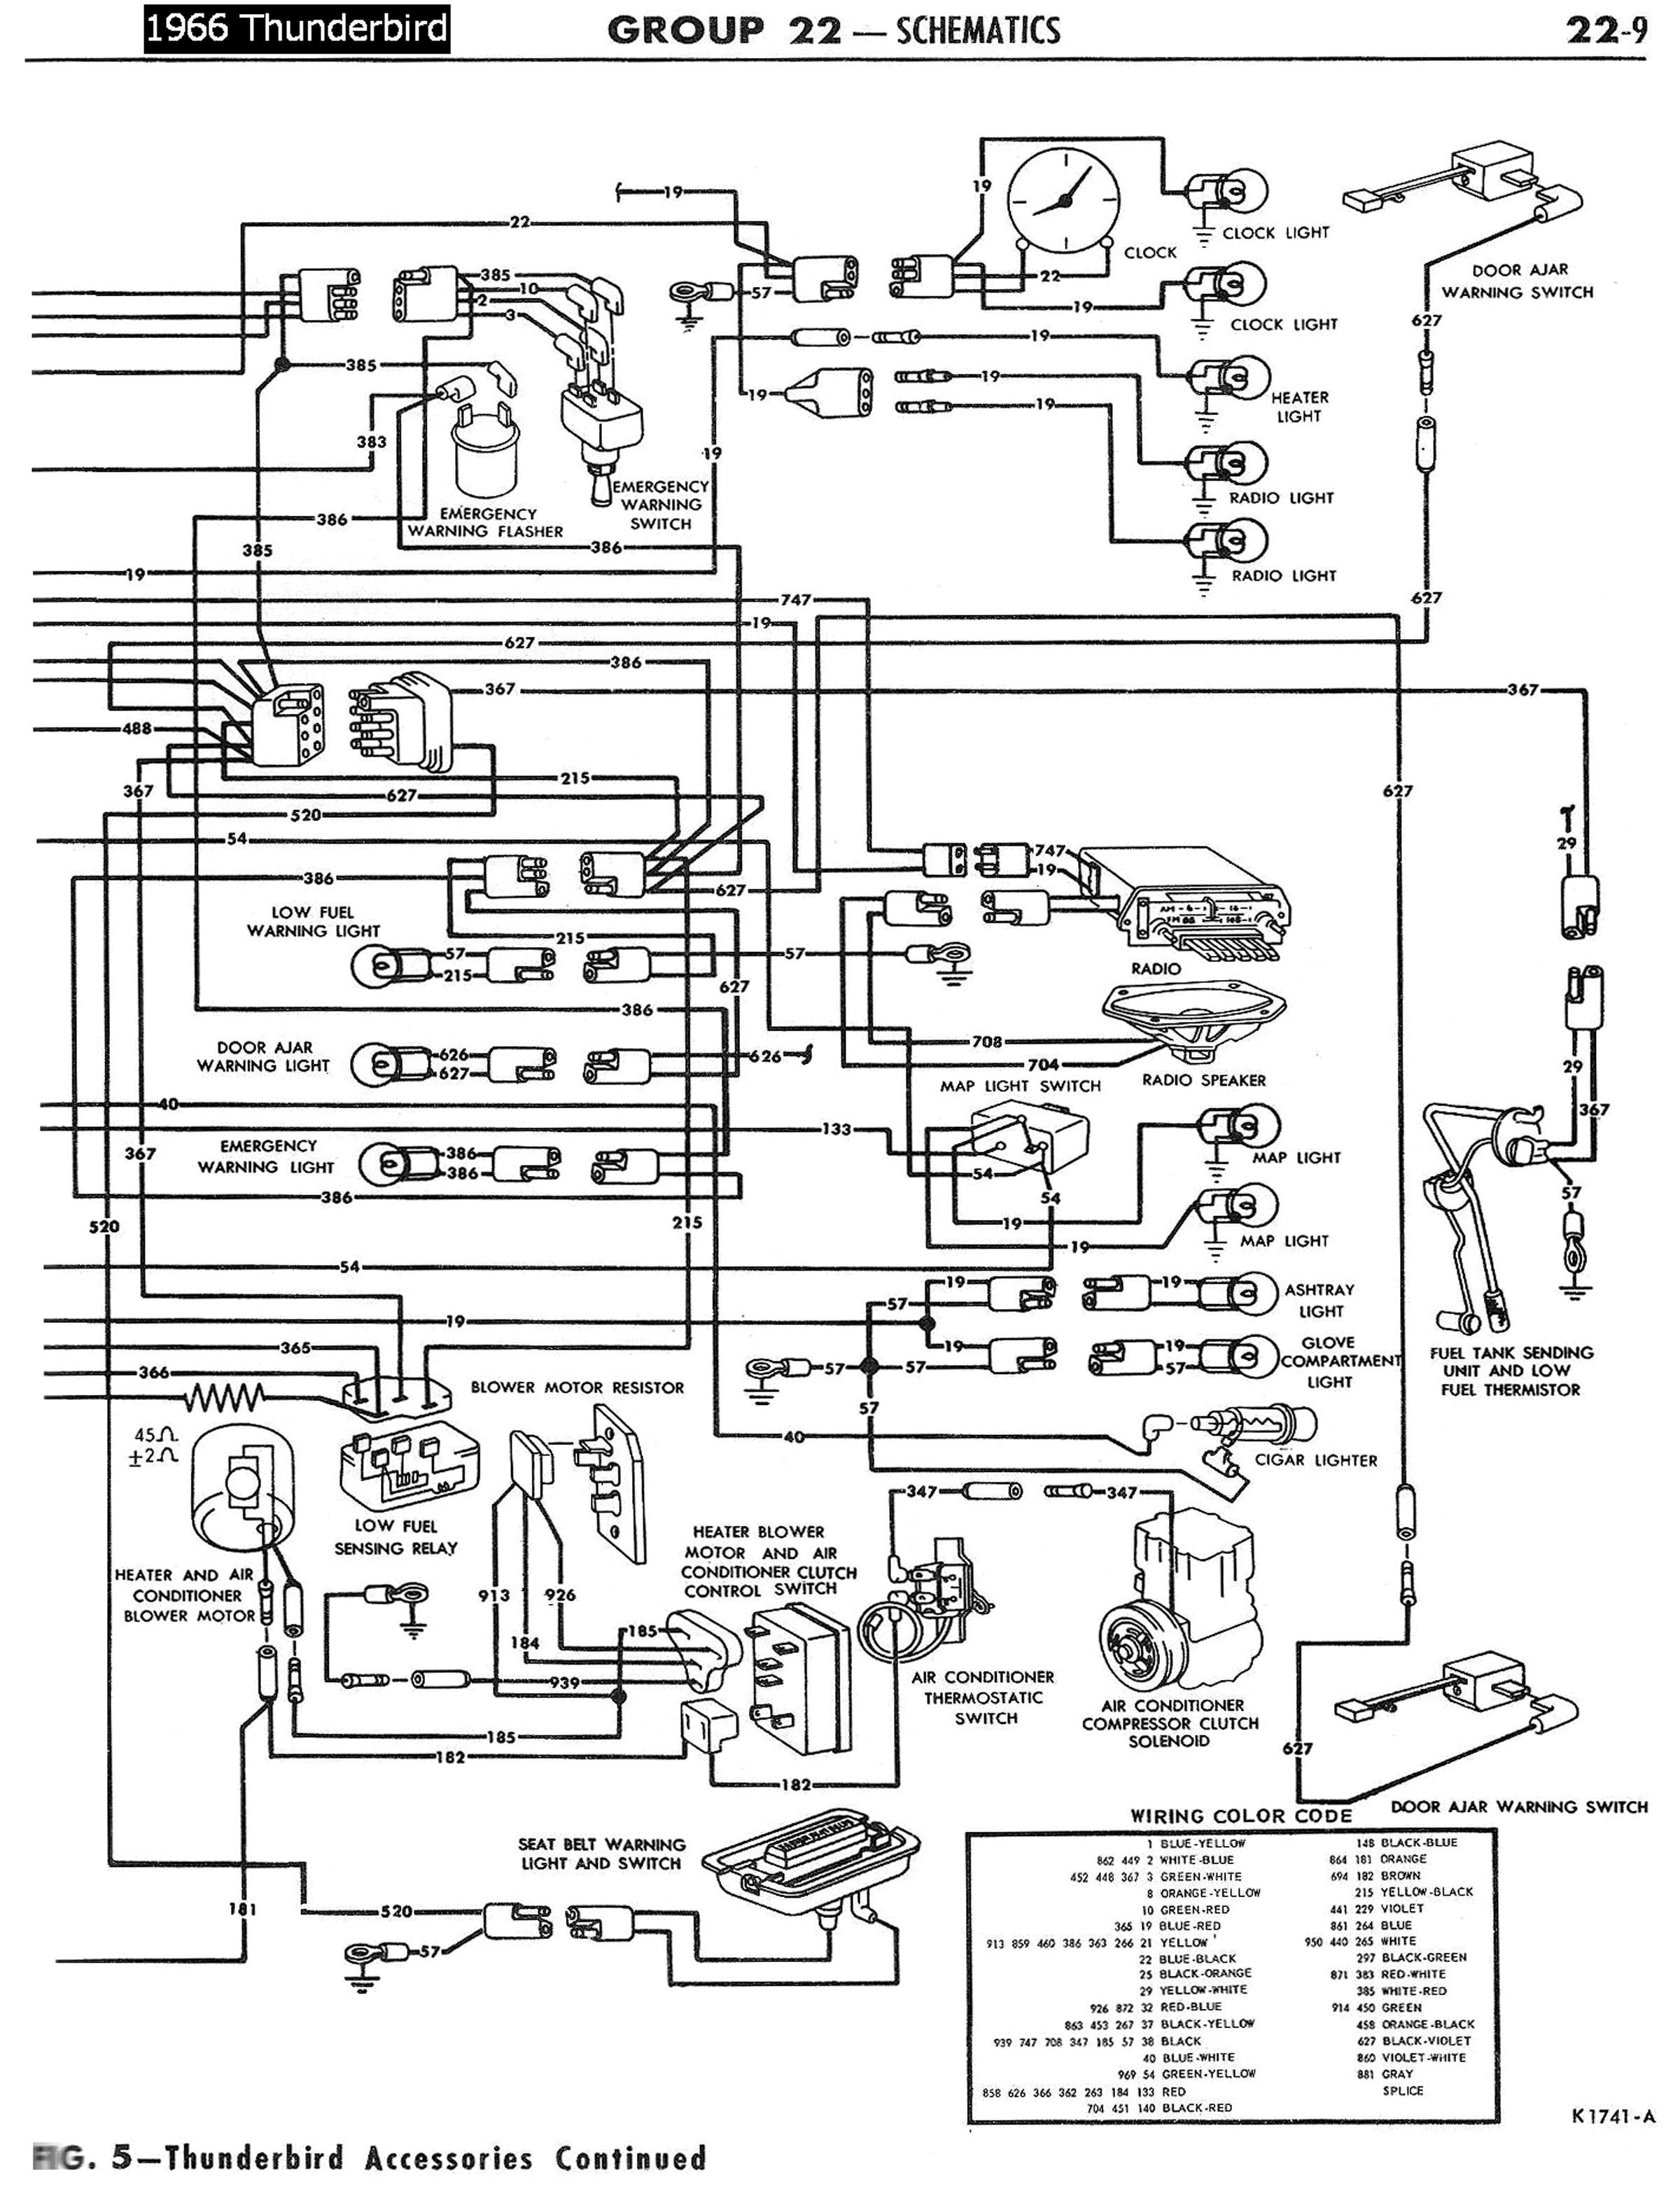 chevy truck wiring diagram as well vw beetle wiring diagram on 2000